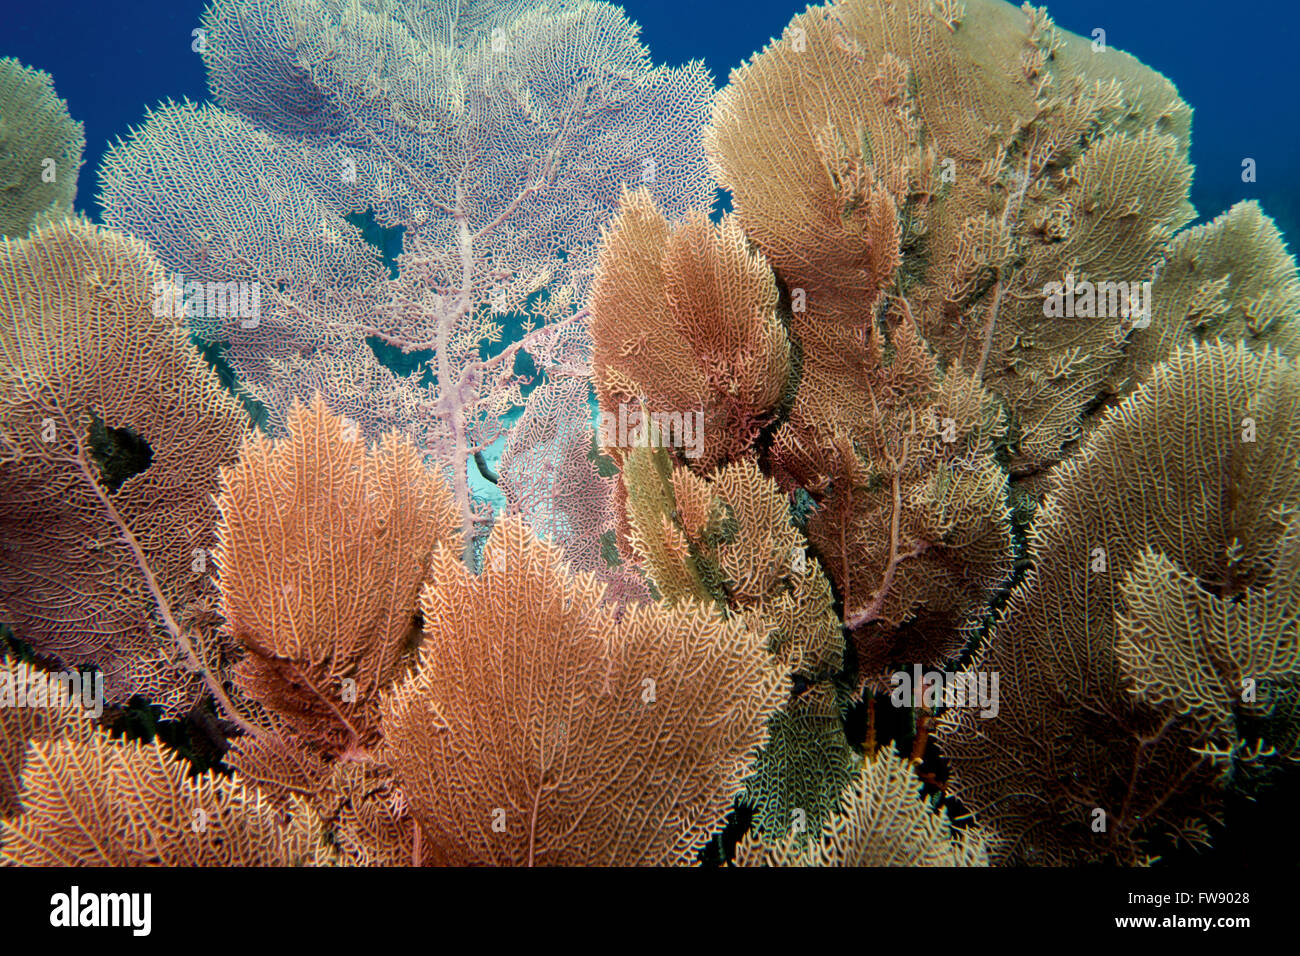 Sea fans in the tropical waters outside the Caribbean island of Bonaire - Stock Image